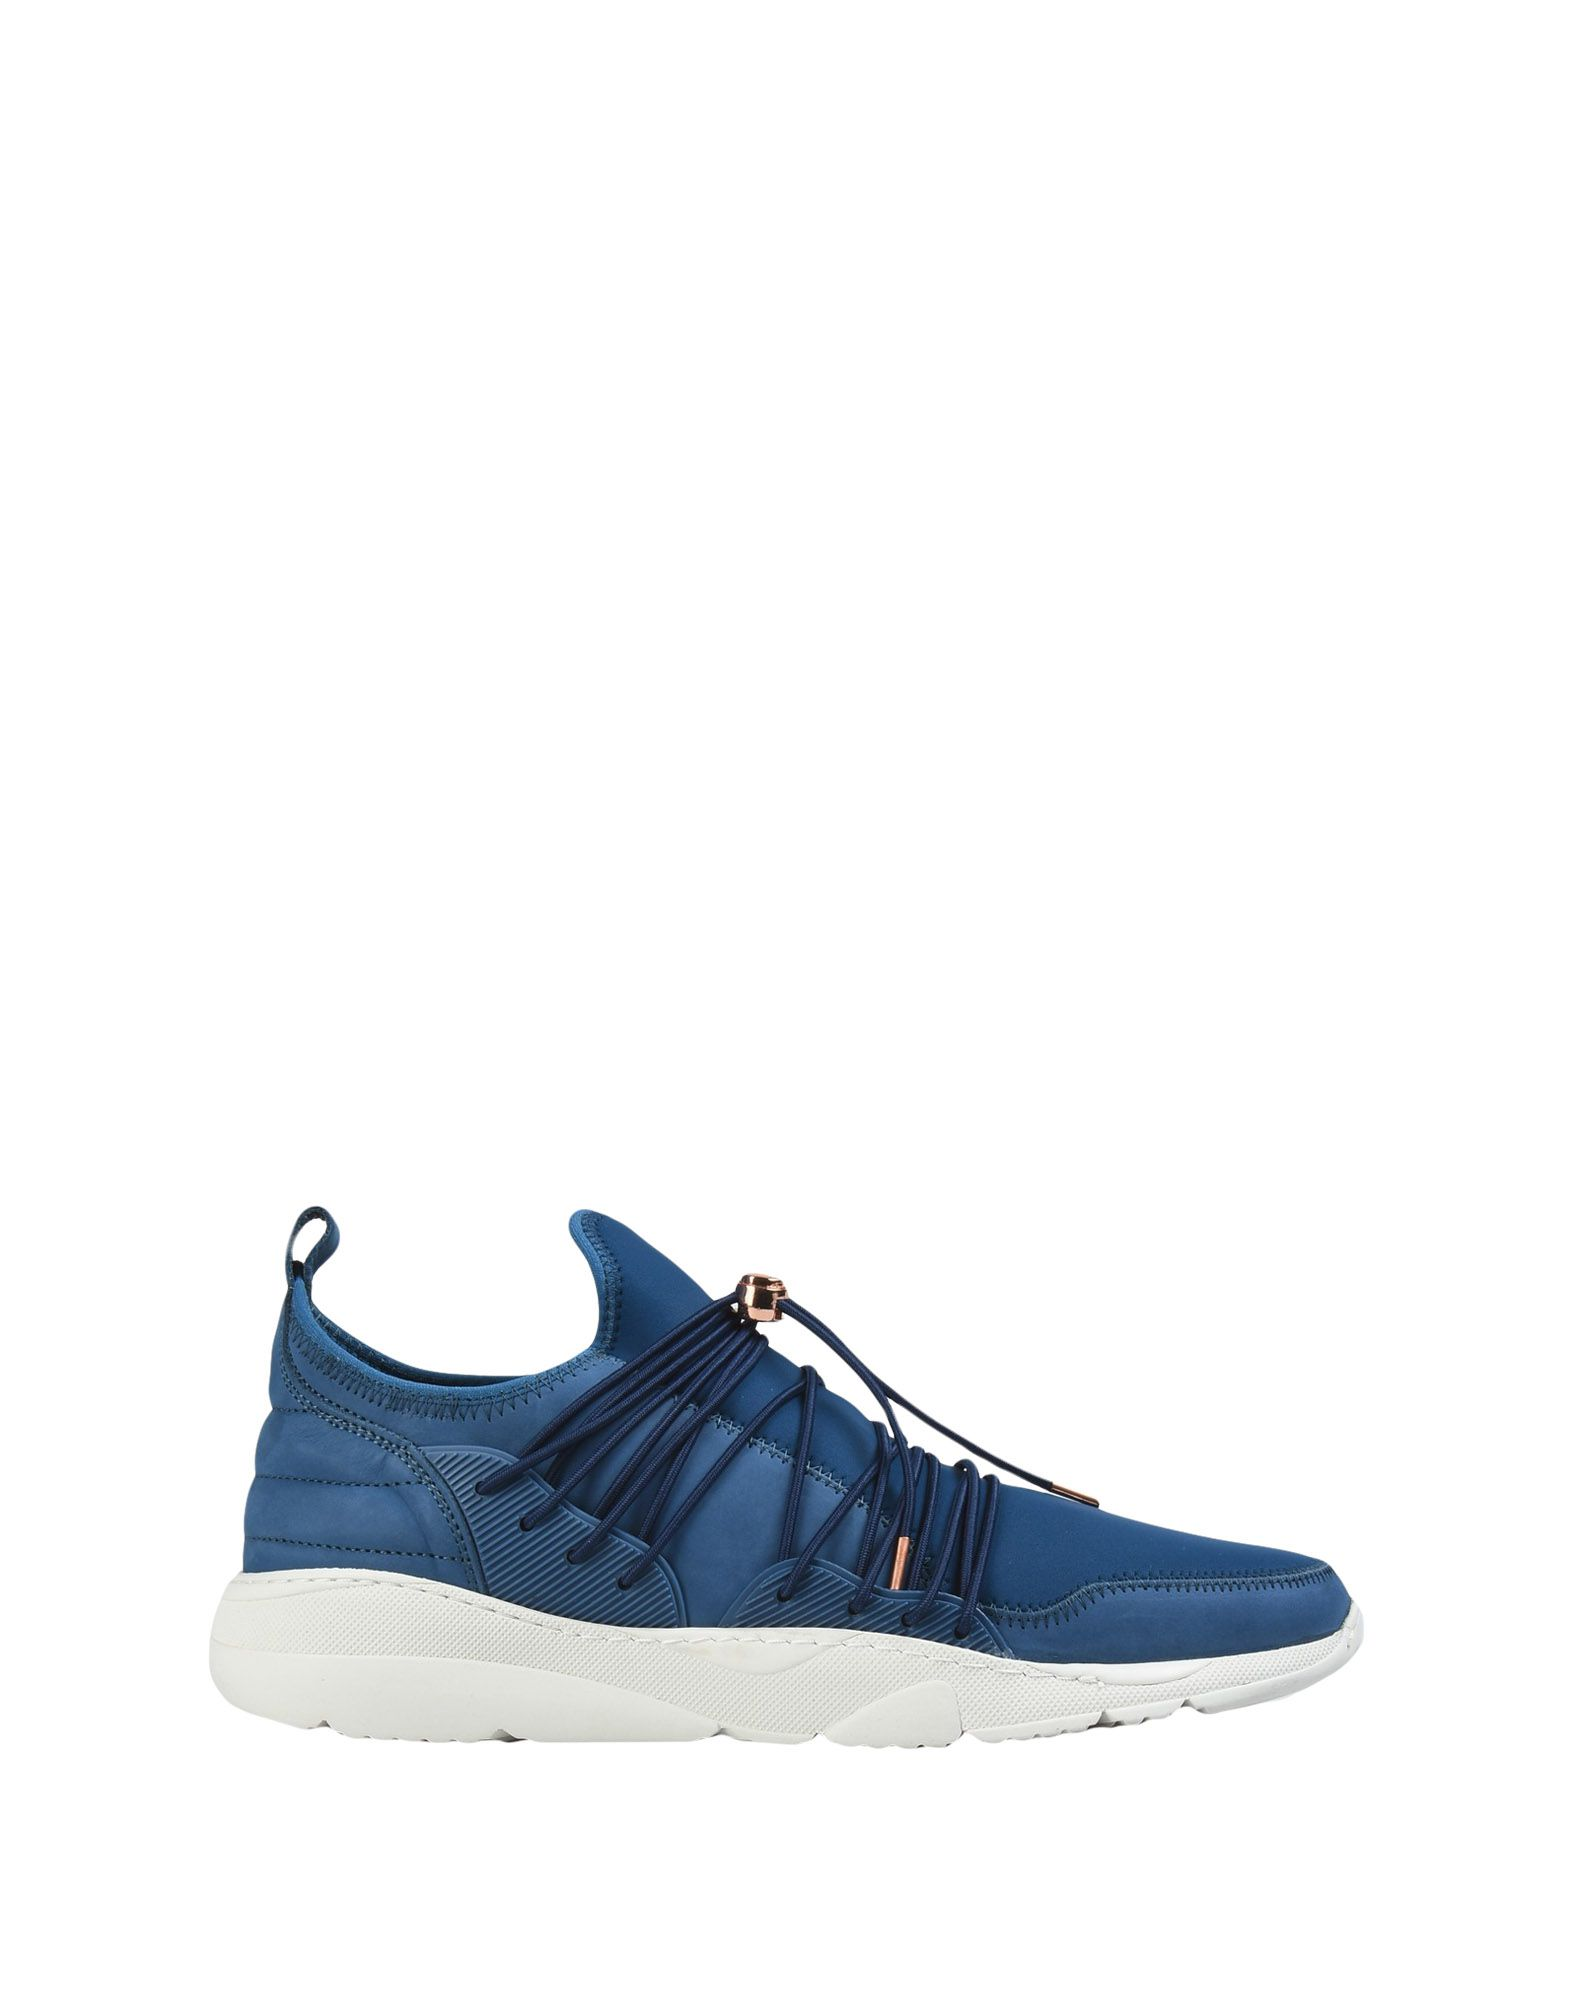 Sneakers Filling Pieces Runner 3.0 Low Laced - Homme - Sneakers Filling Pieces sur